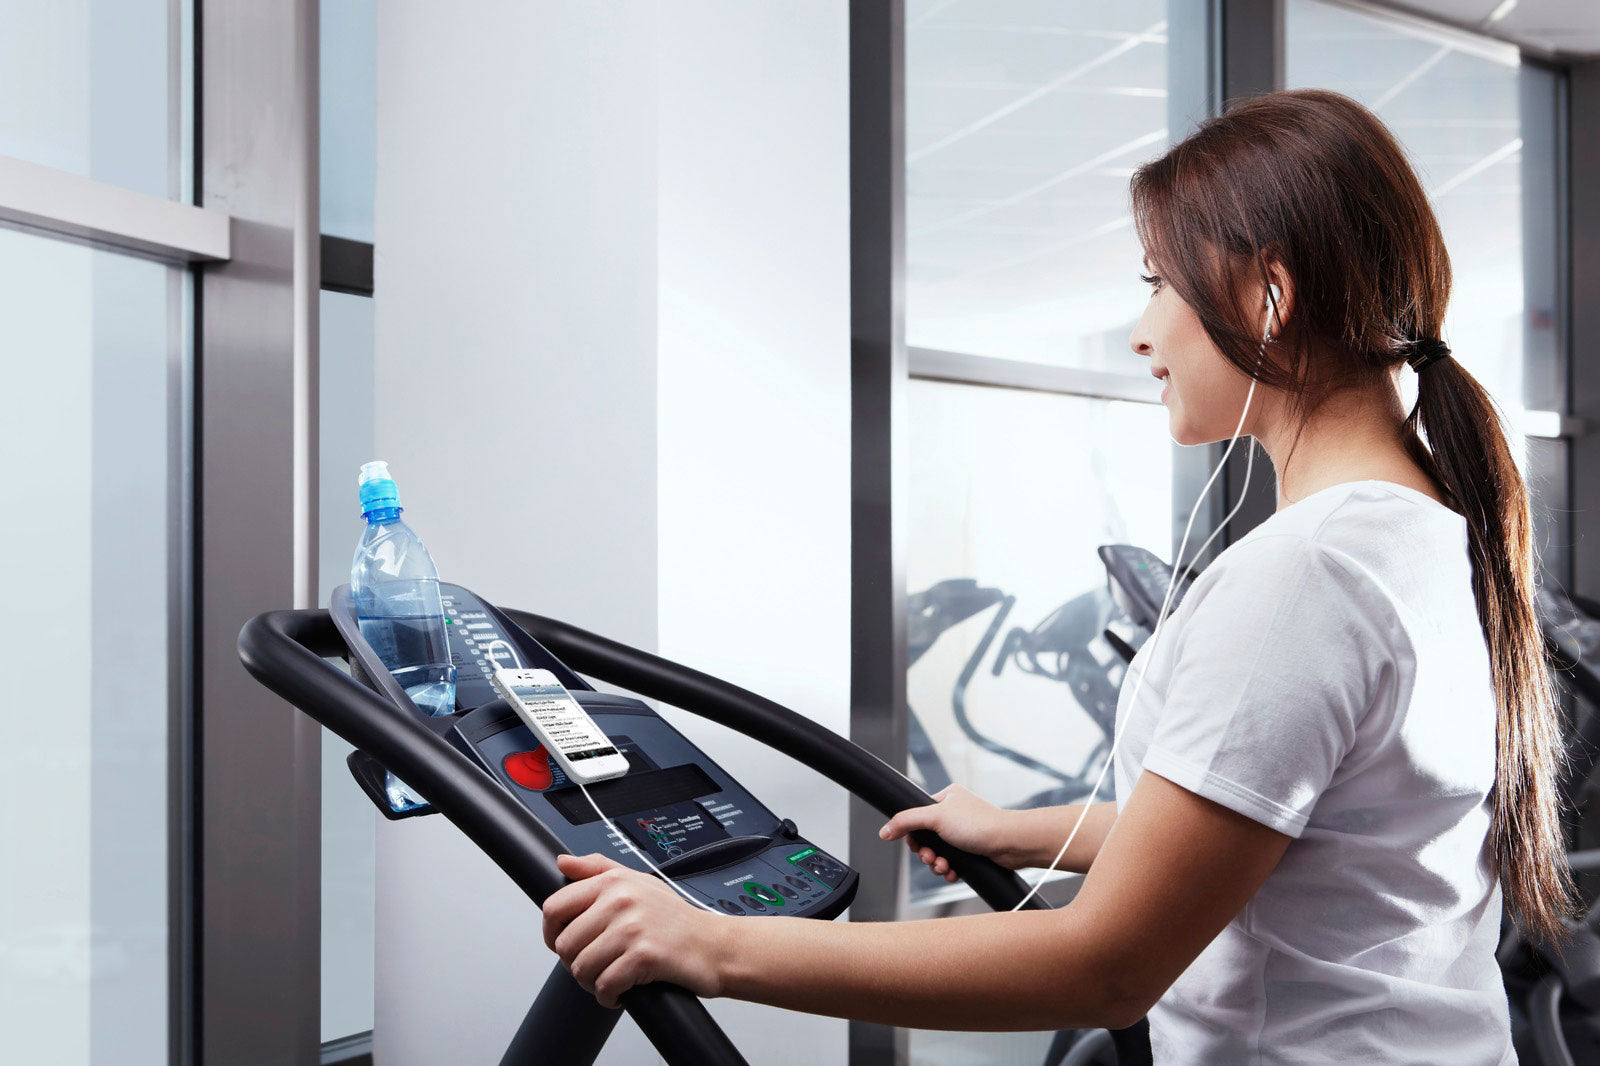 Use the Simple Sucker on the Treadmill